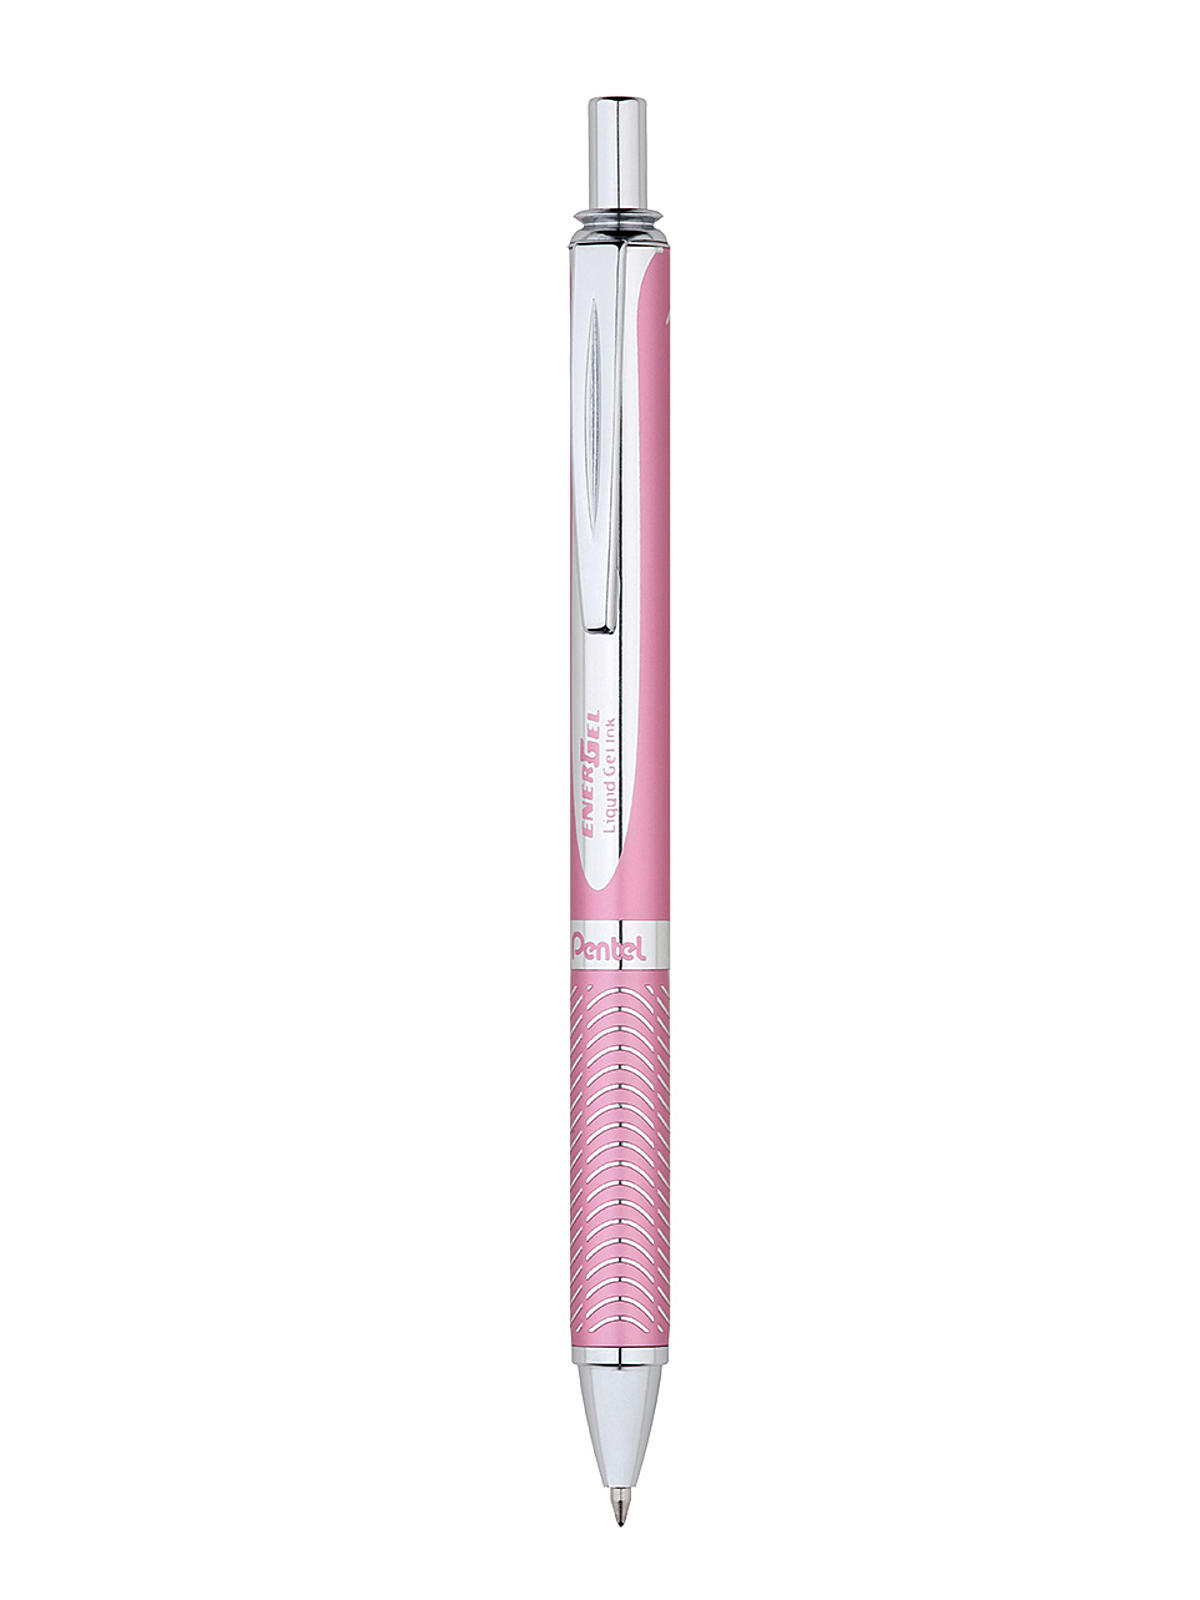 EnerGel Alloy RT Gel Pen